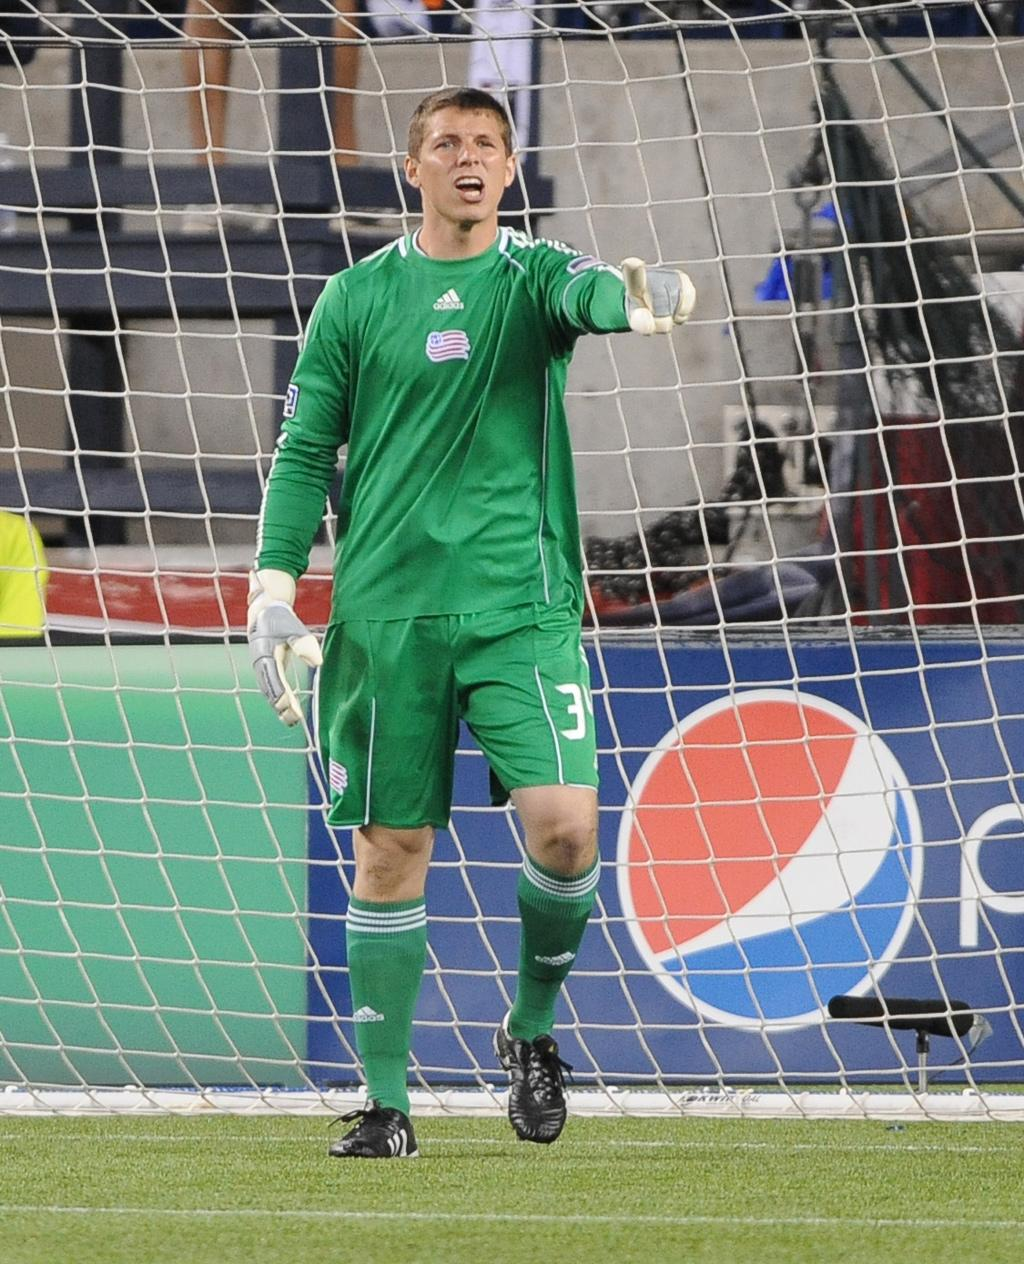 Goalkeeper Bobby Shuttleworth is expected to make his first career MLS start on Saturday night for the Revs.